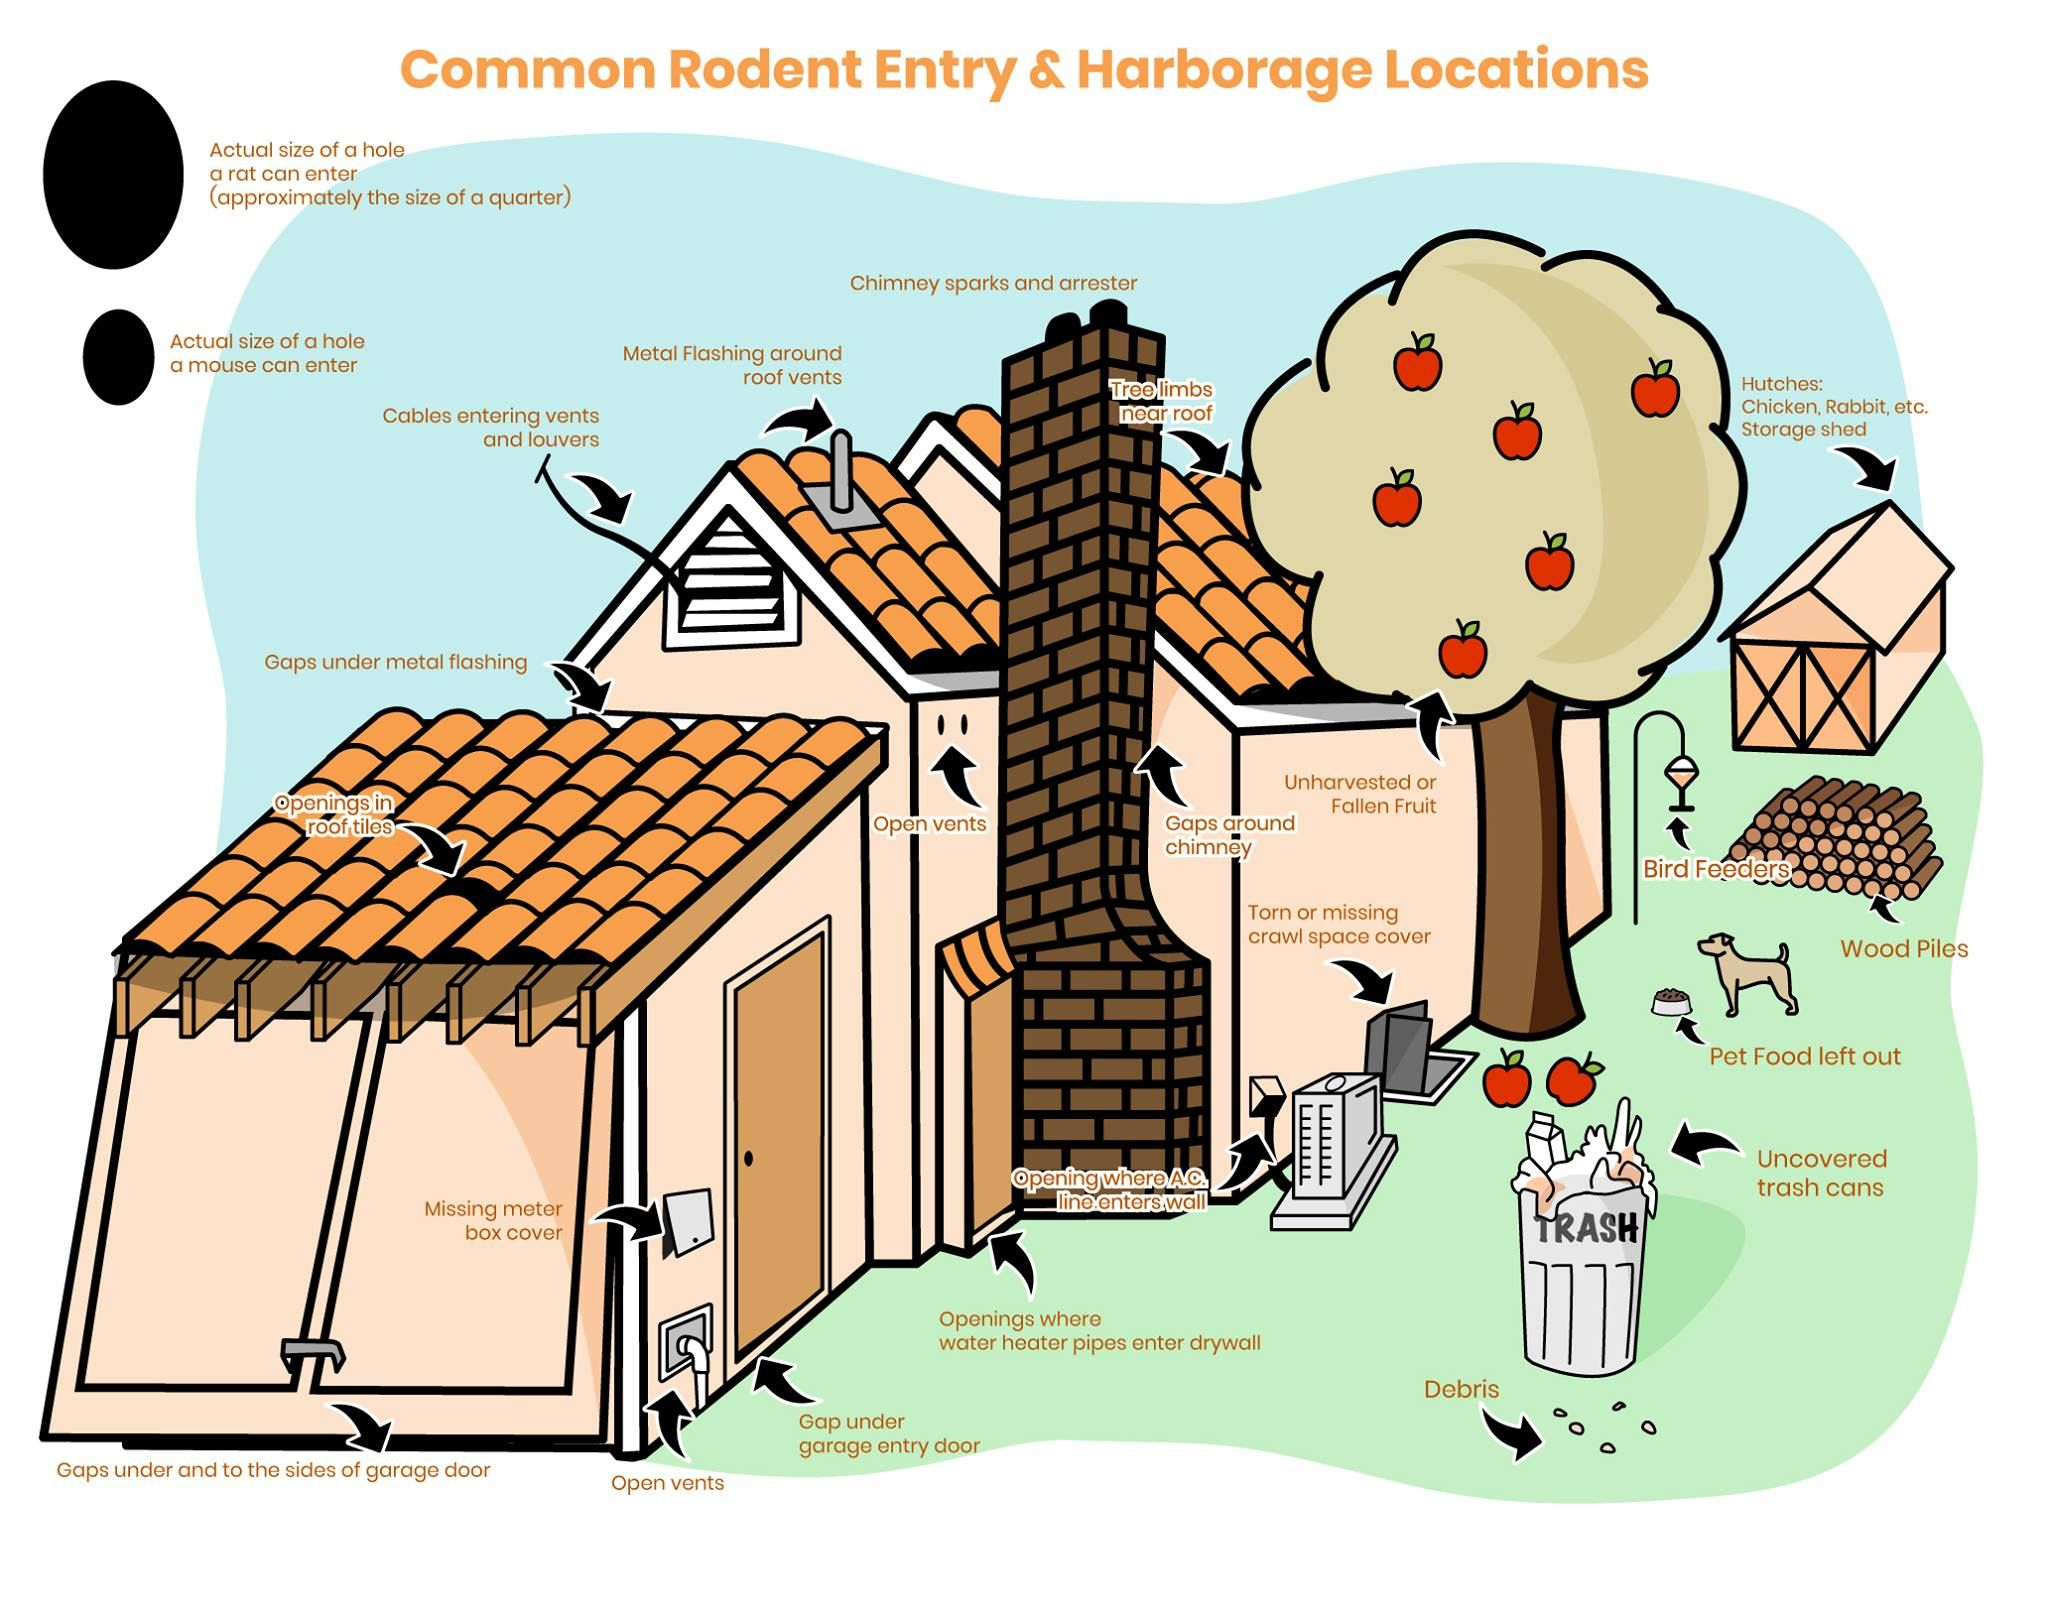 Find out the most common entry points rodents use to